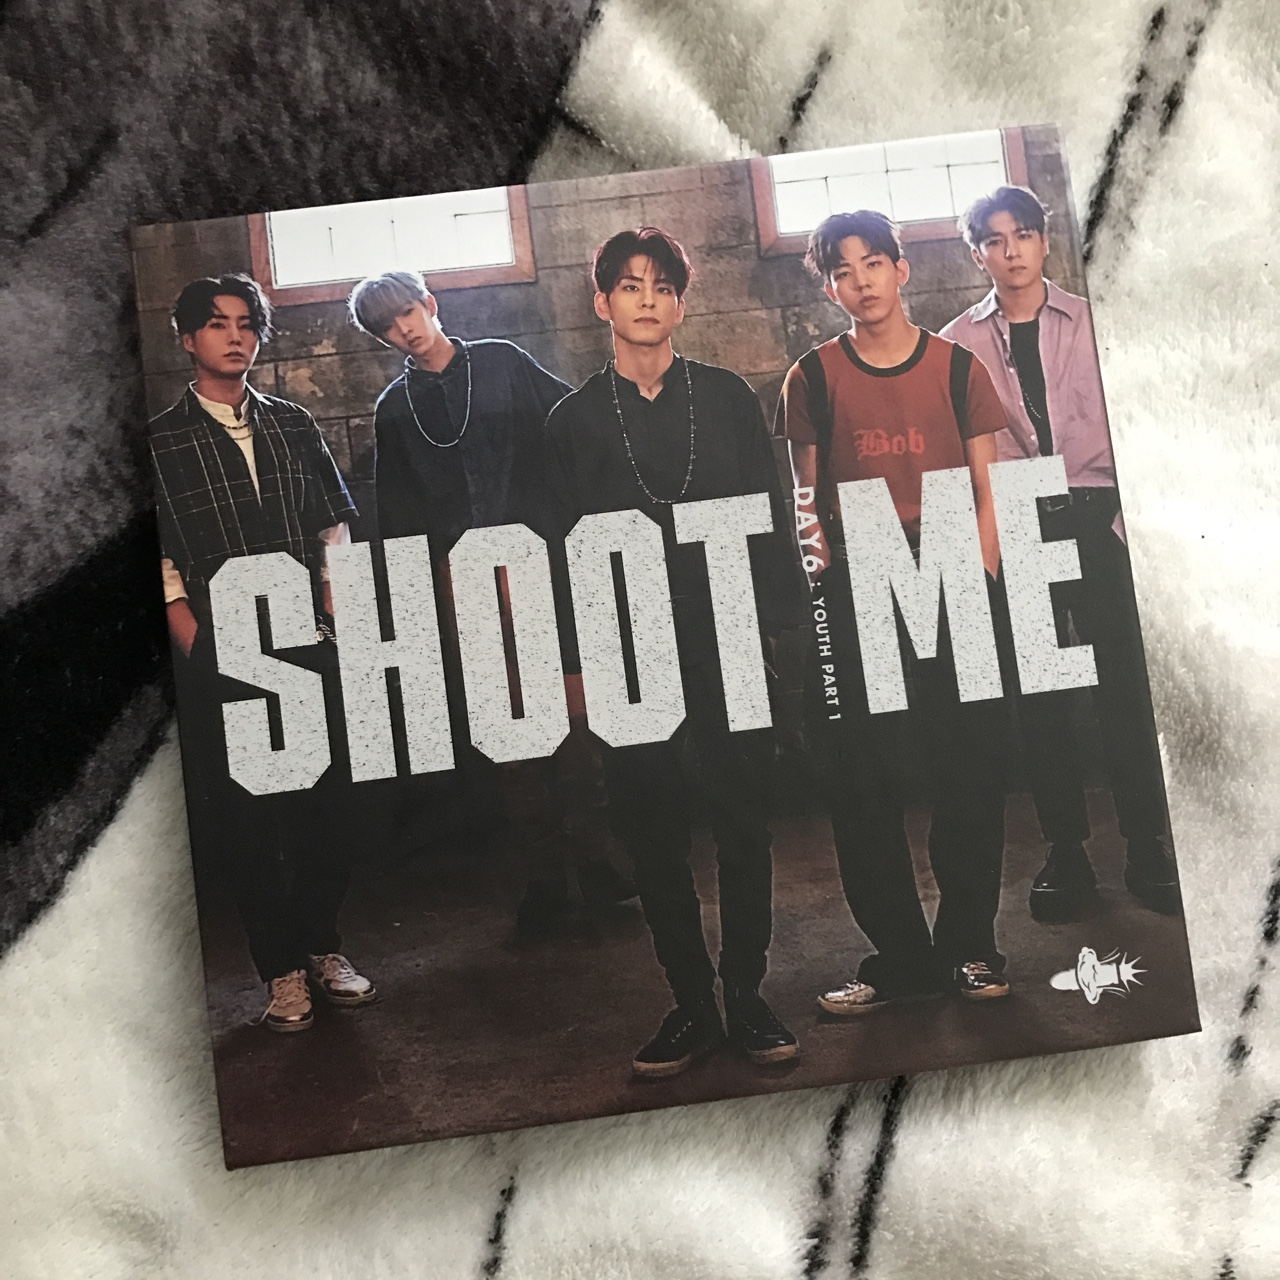 Day6 shoot me album Includes Dowoon and Wonpil pc - Depop